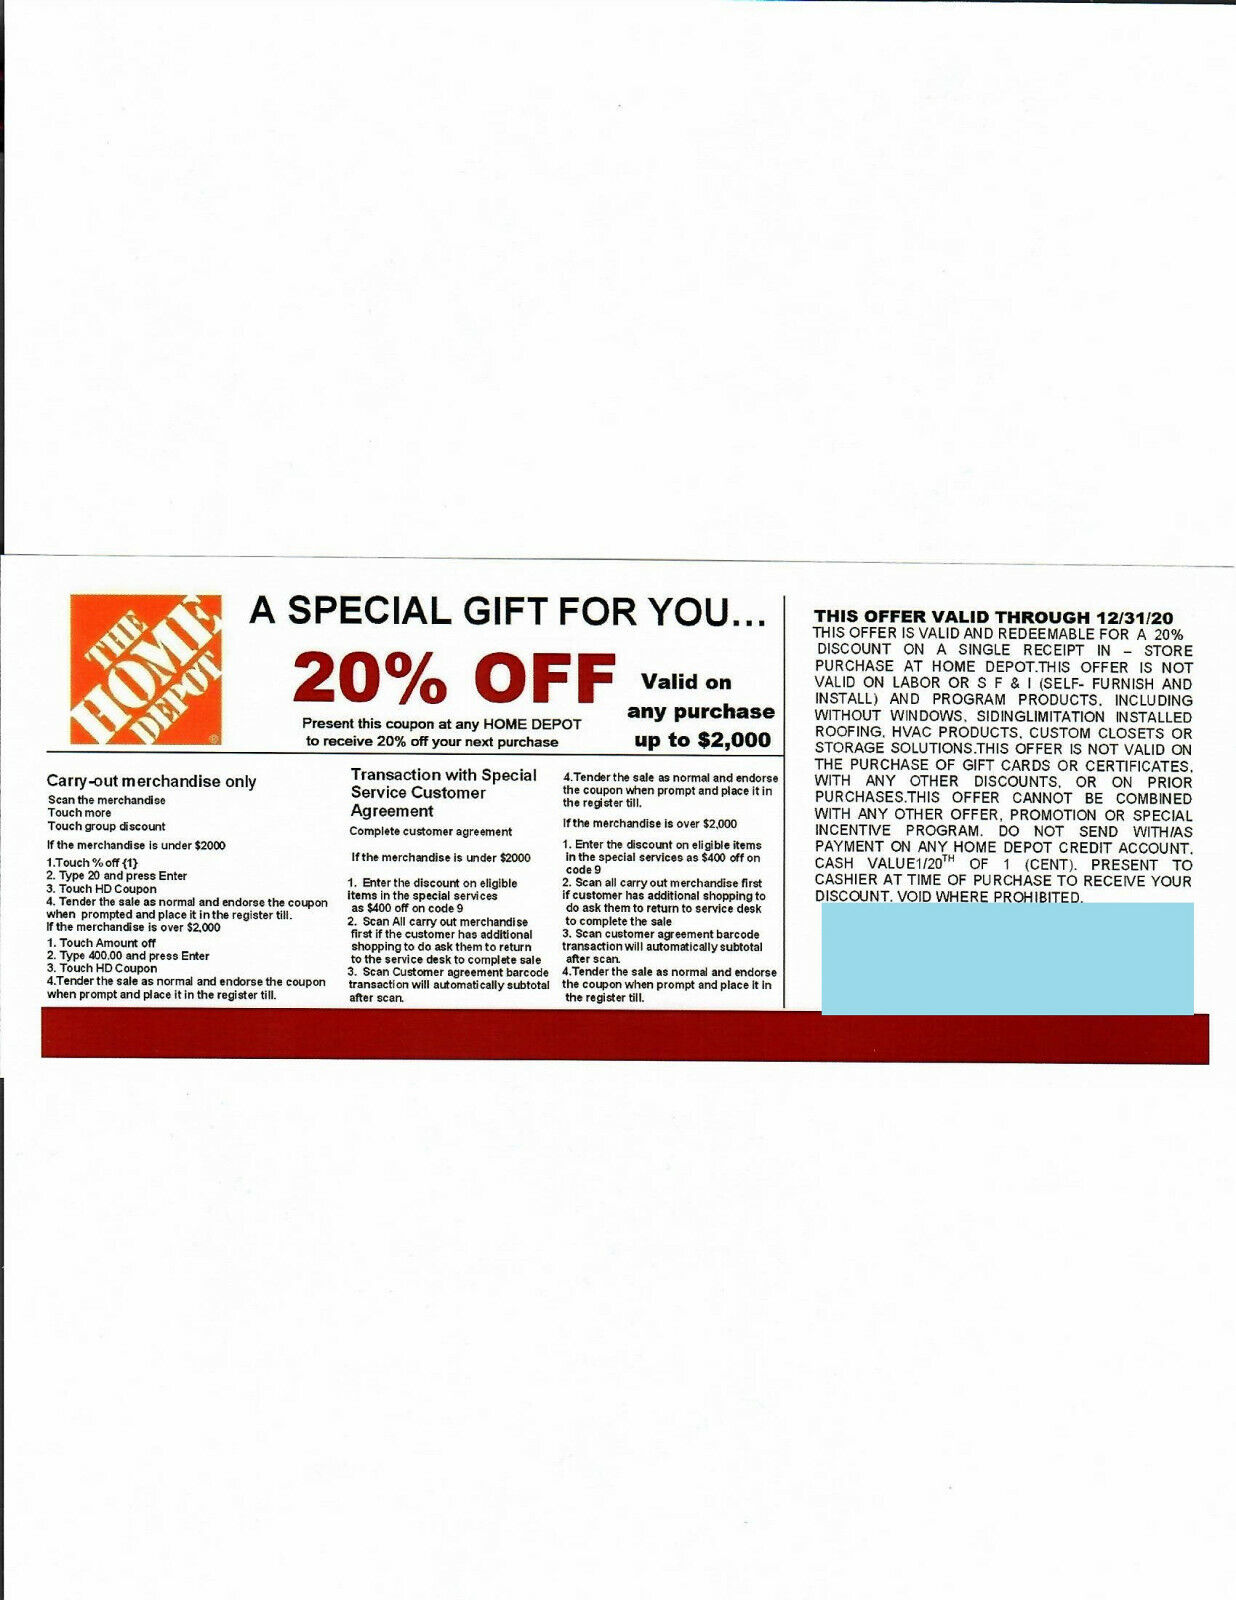 4 20 OFF HOME DEPOT Competitors Coupon At Lowe s Exp 12/31/20  - $20.00